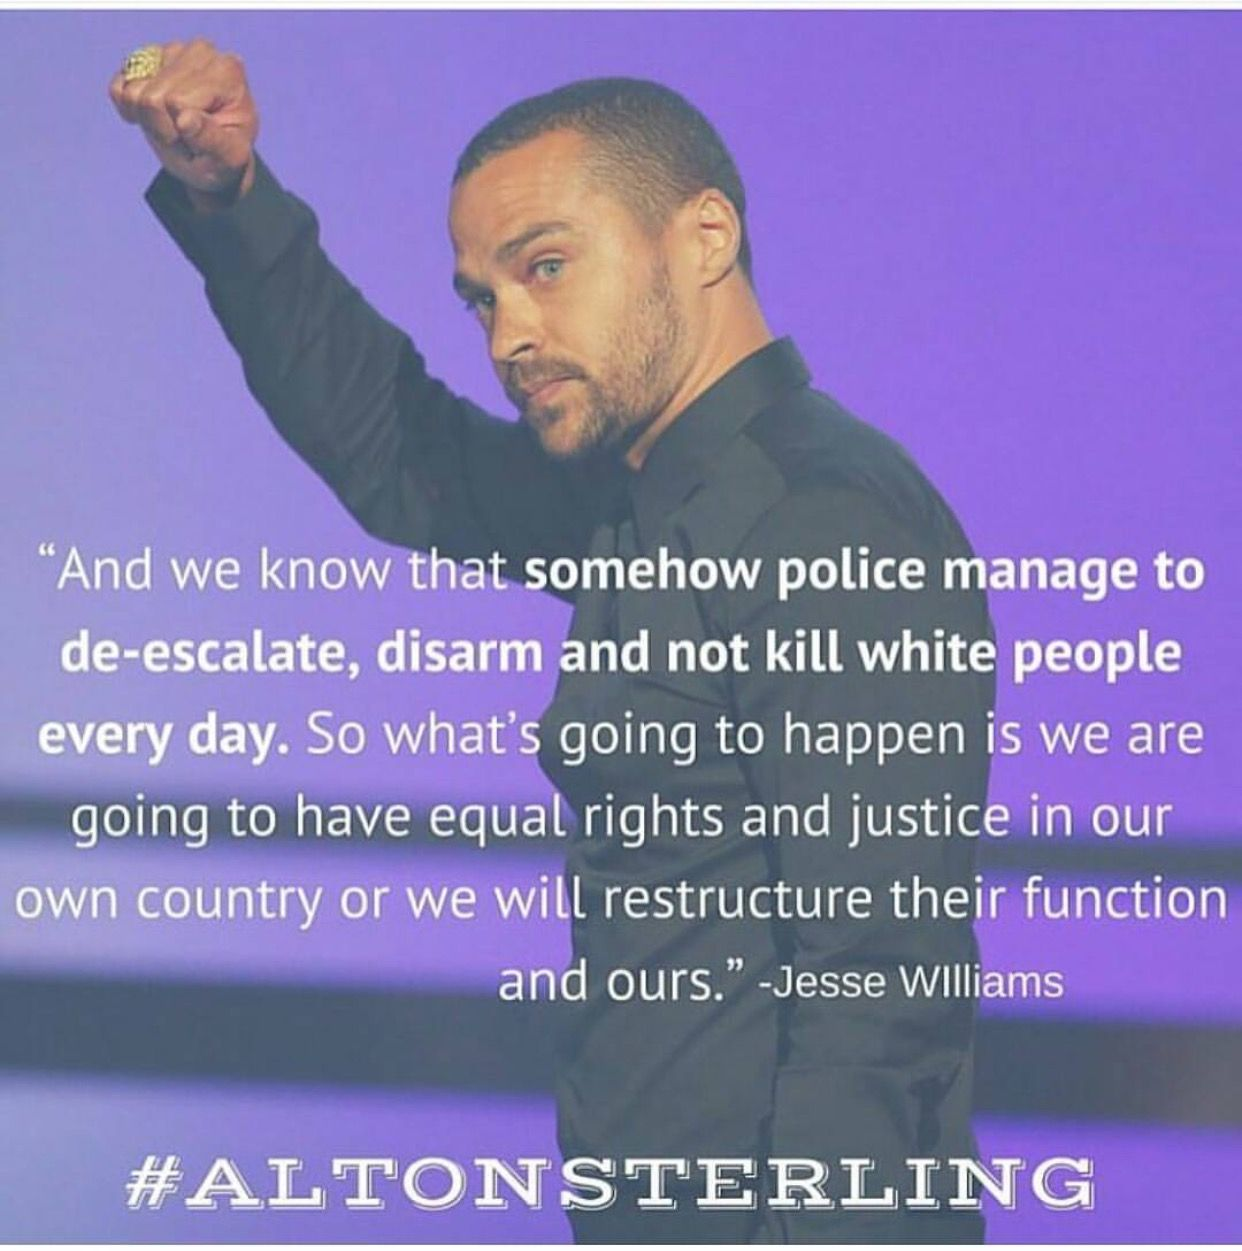 Pin By Matthew Cooper On Boogie Alton Sterling Jesse Williams Equal Rights